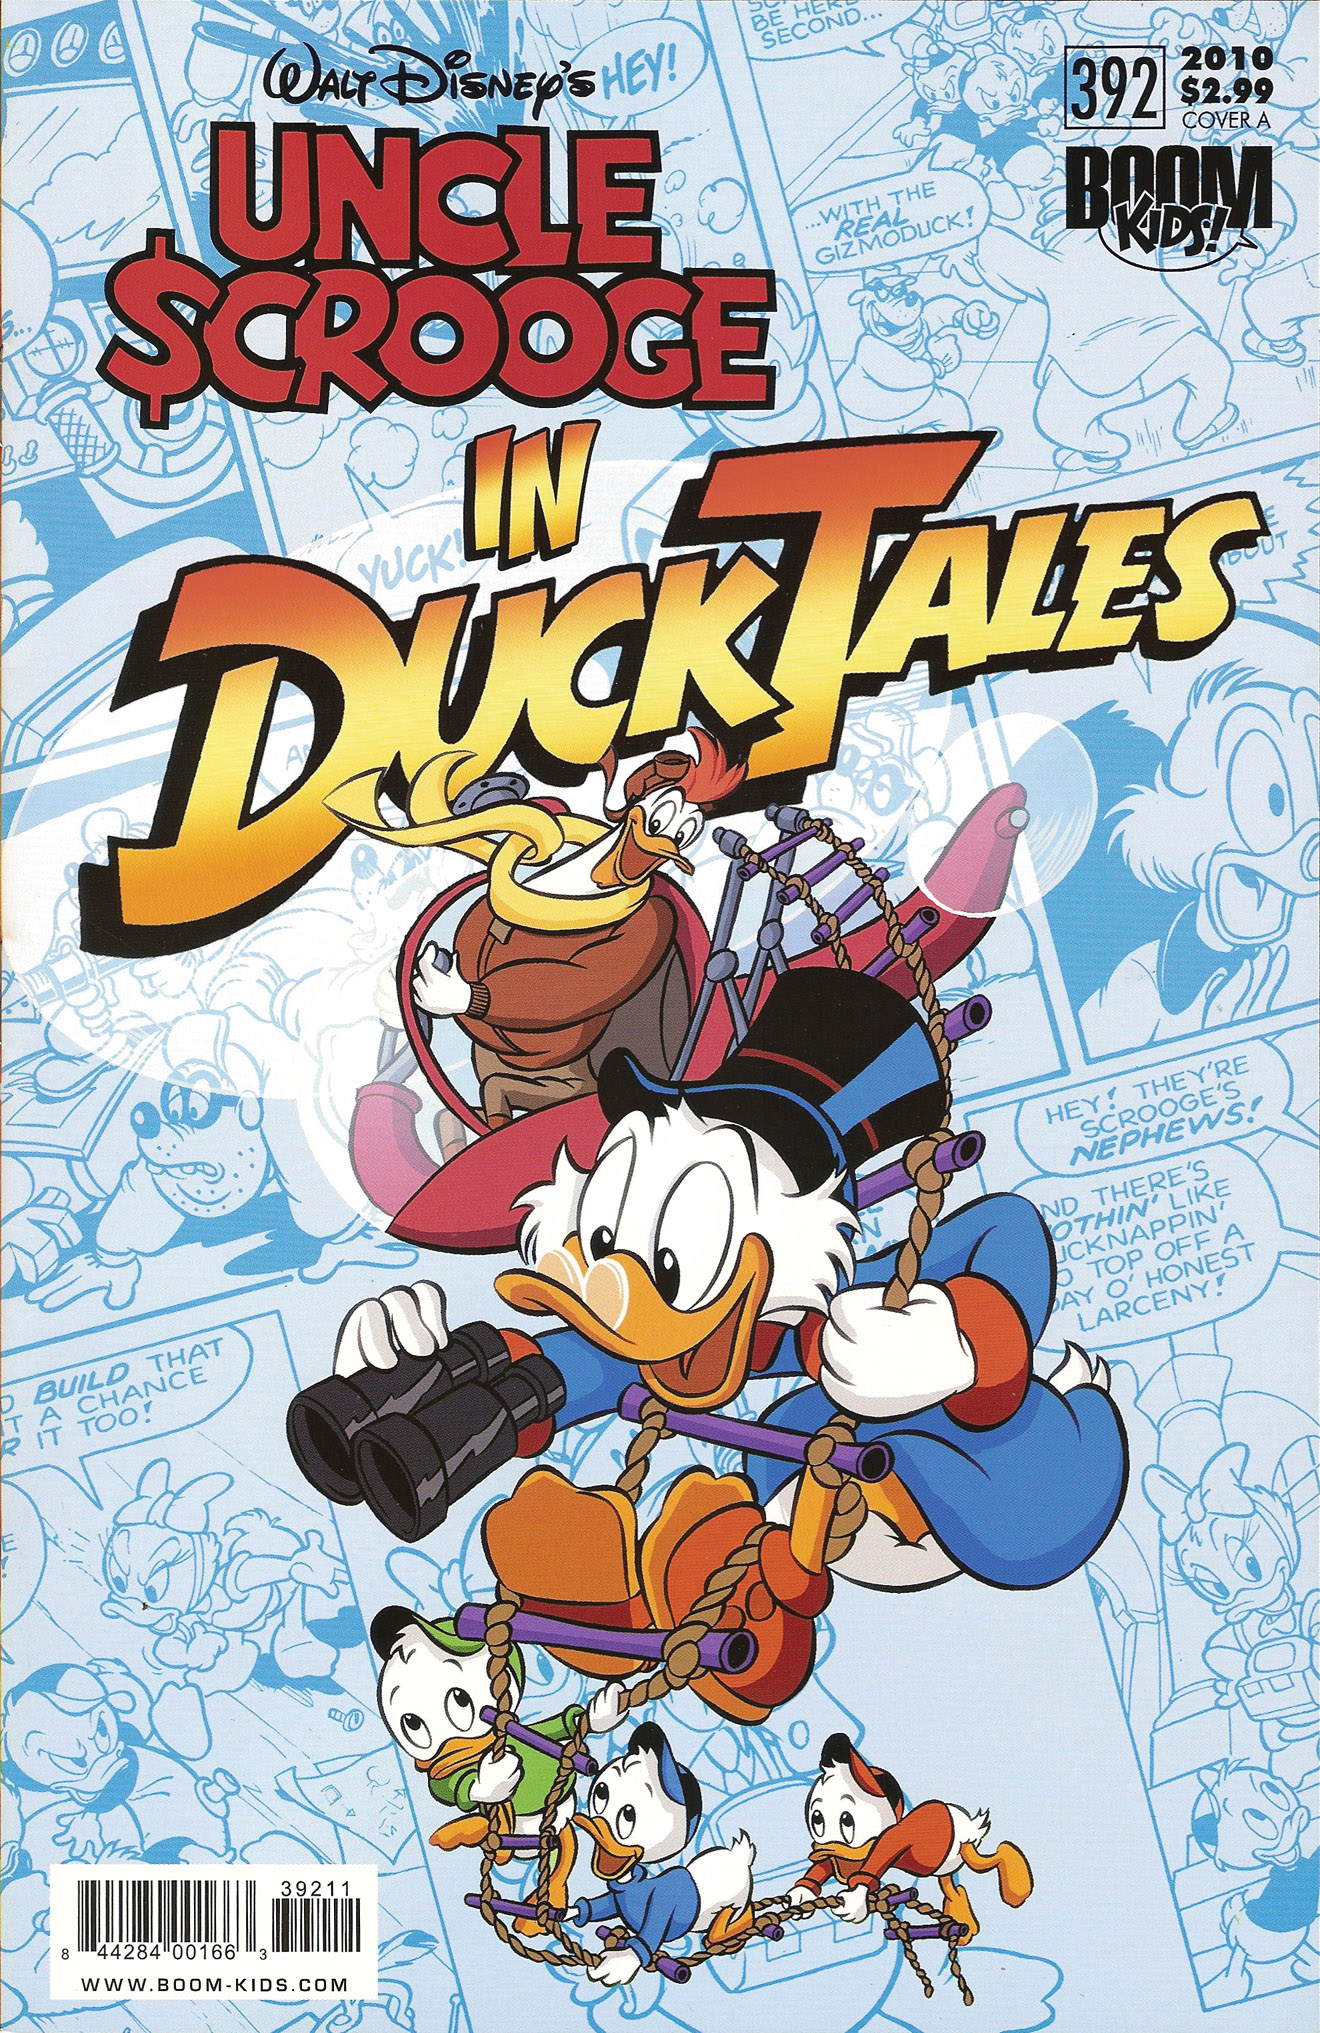 Read online Uncle Scrooge (1953) comic -  Issue #392 - 1